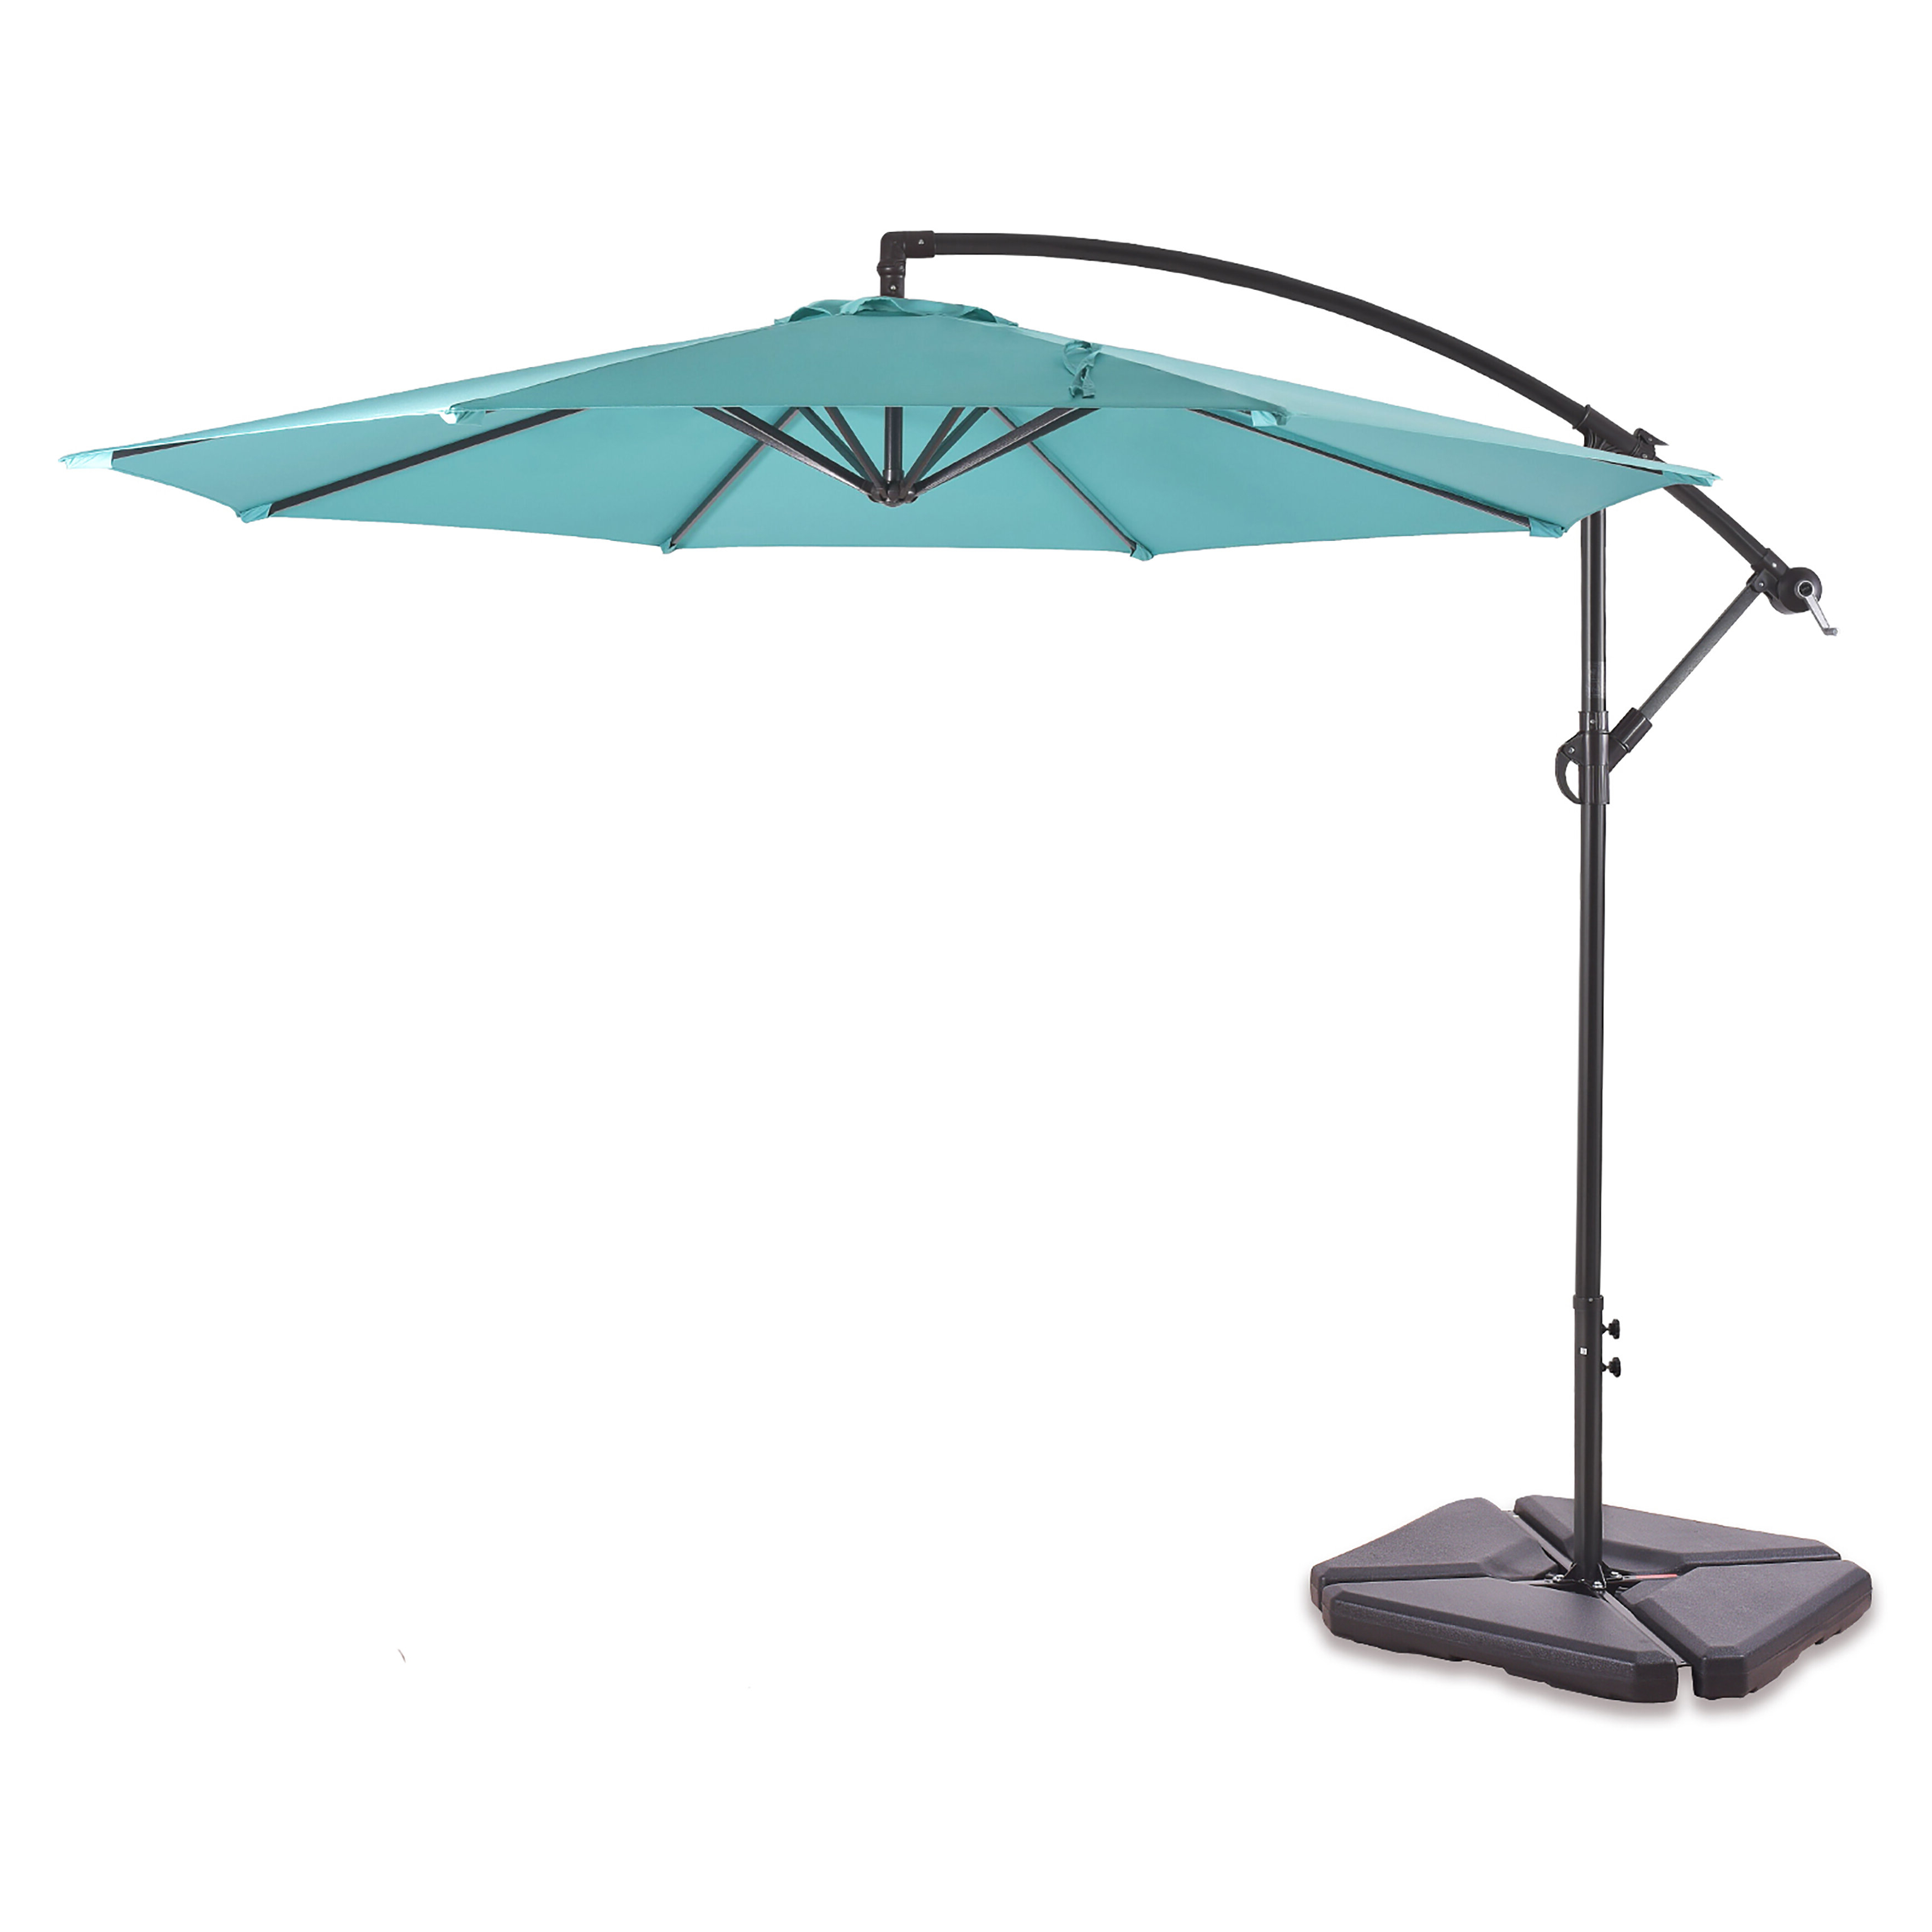 Karr 10' Cantilever Umbrella For Most Up To Date Anna Cantilever Umbrellas (View 15 of 20)